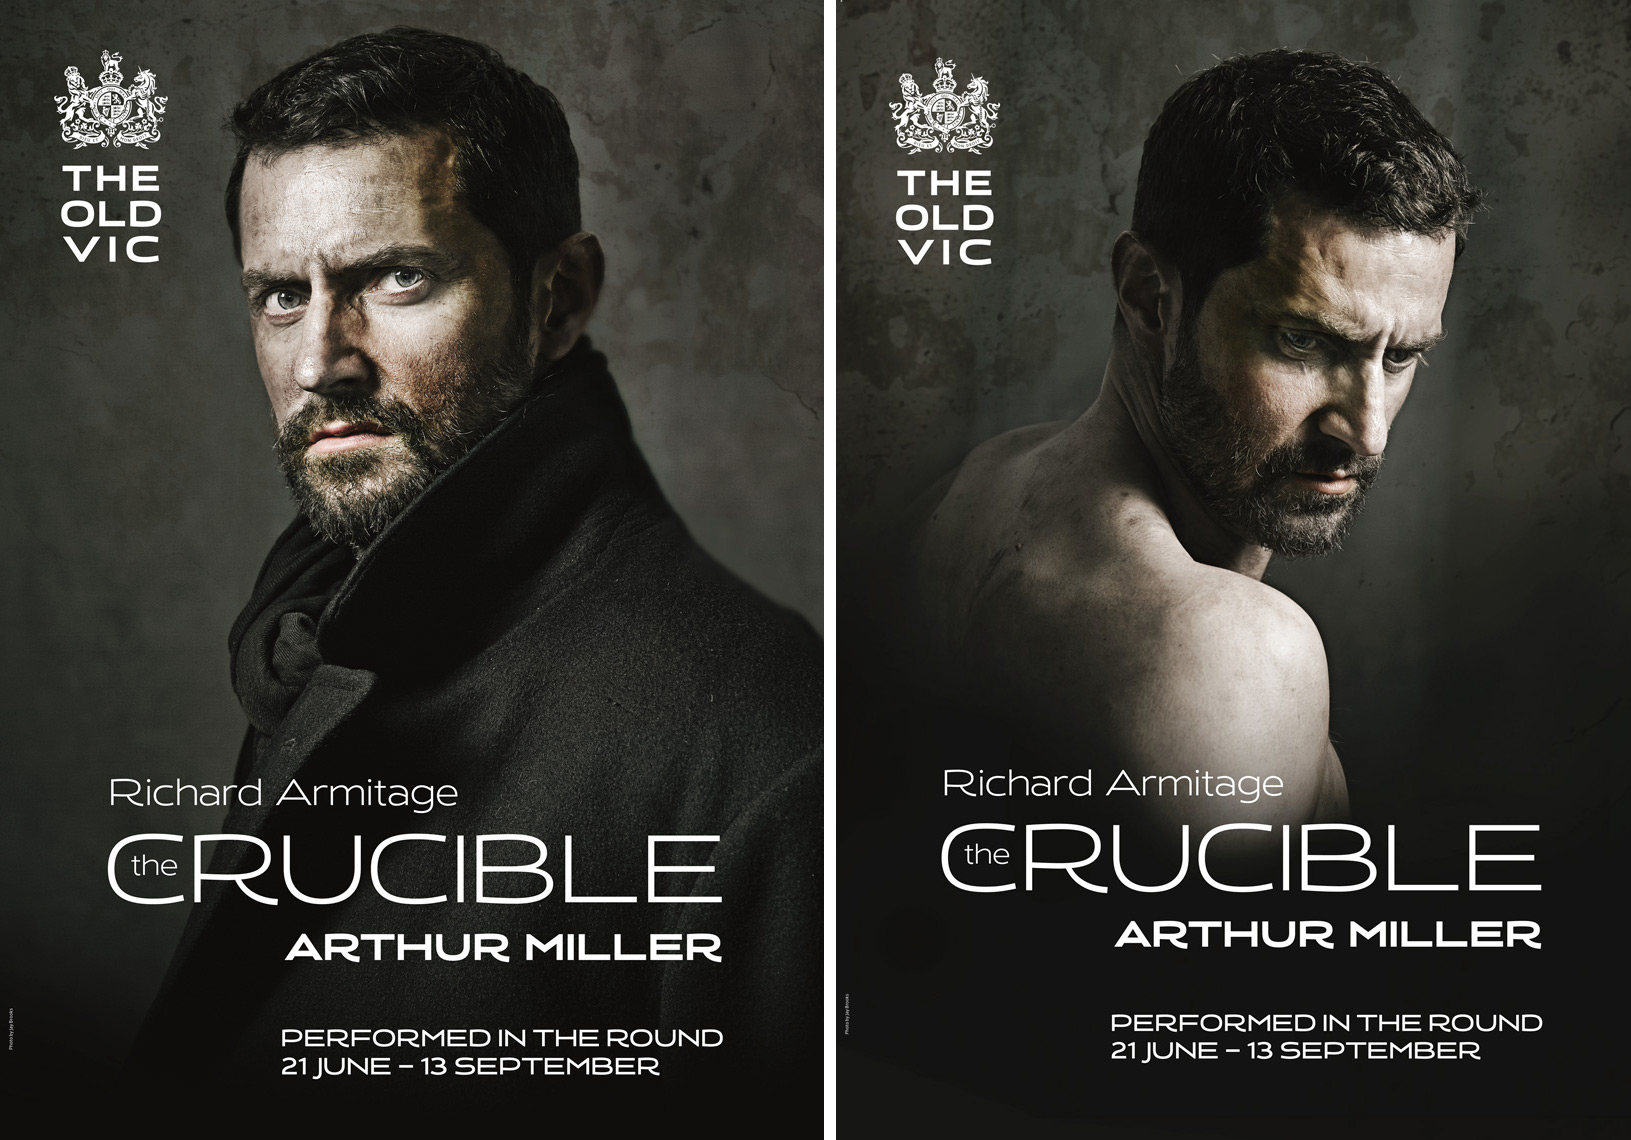 crucible richard armitage old vic Portrait Music Advertising Theatre Old Vic BAFTA Trafalgar Photographer